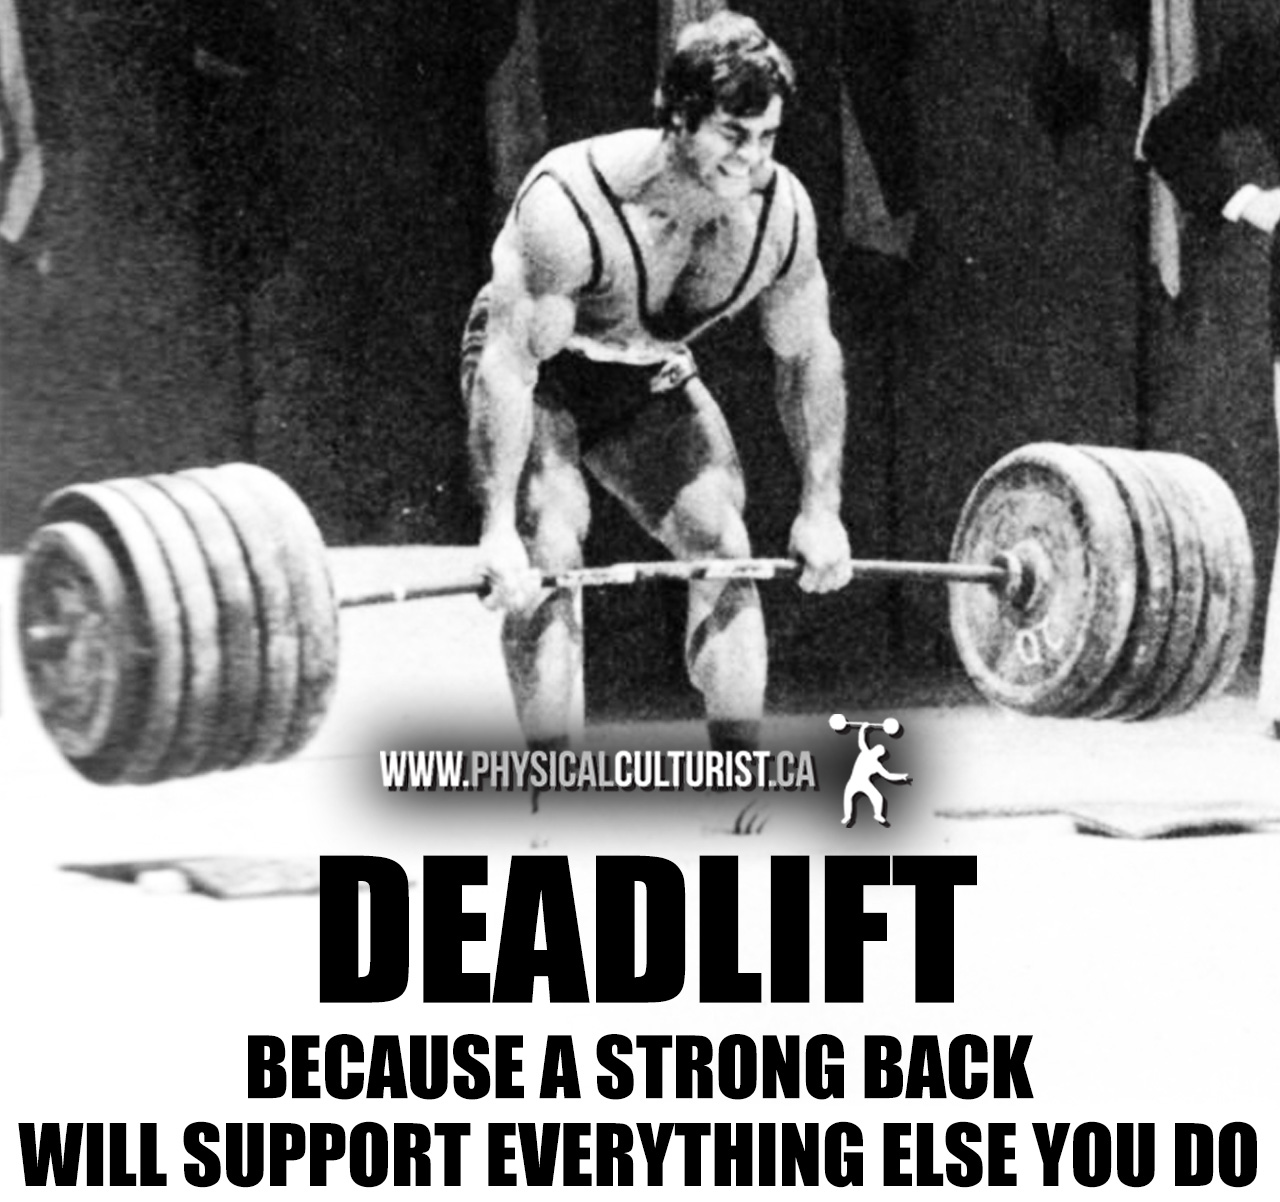 deadlift - because a strong back will support everything else you do